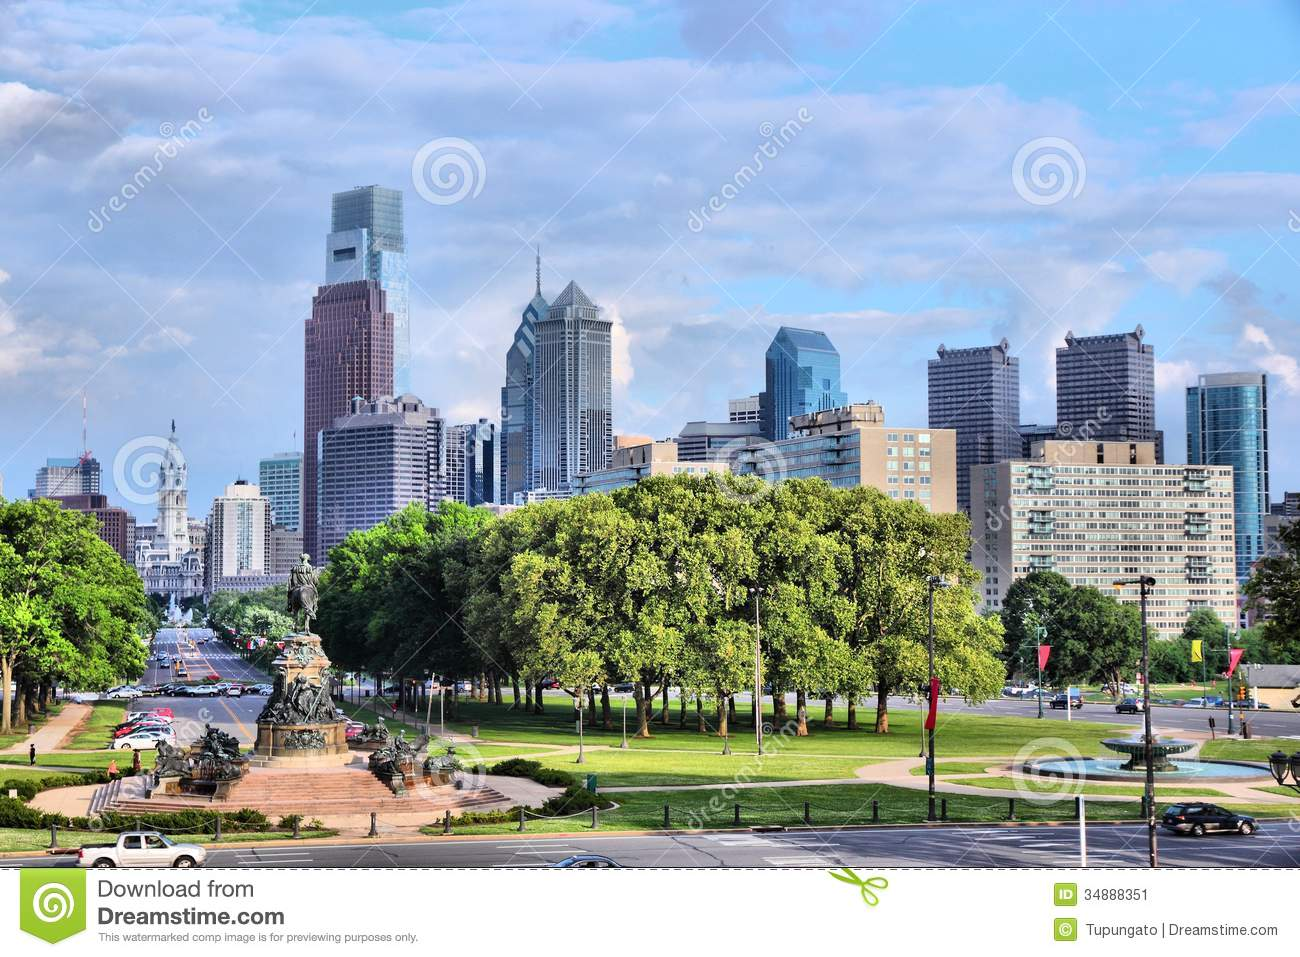 Philadelphia (MS) United States  city images : Philadelphia, Pennsylvania in the United States. City skyline with ...